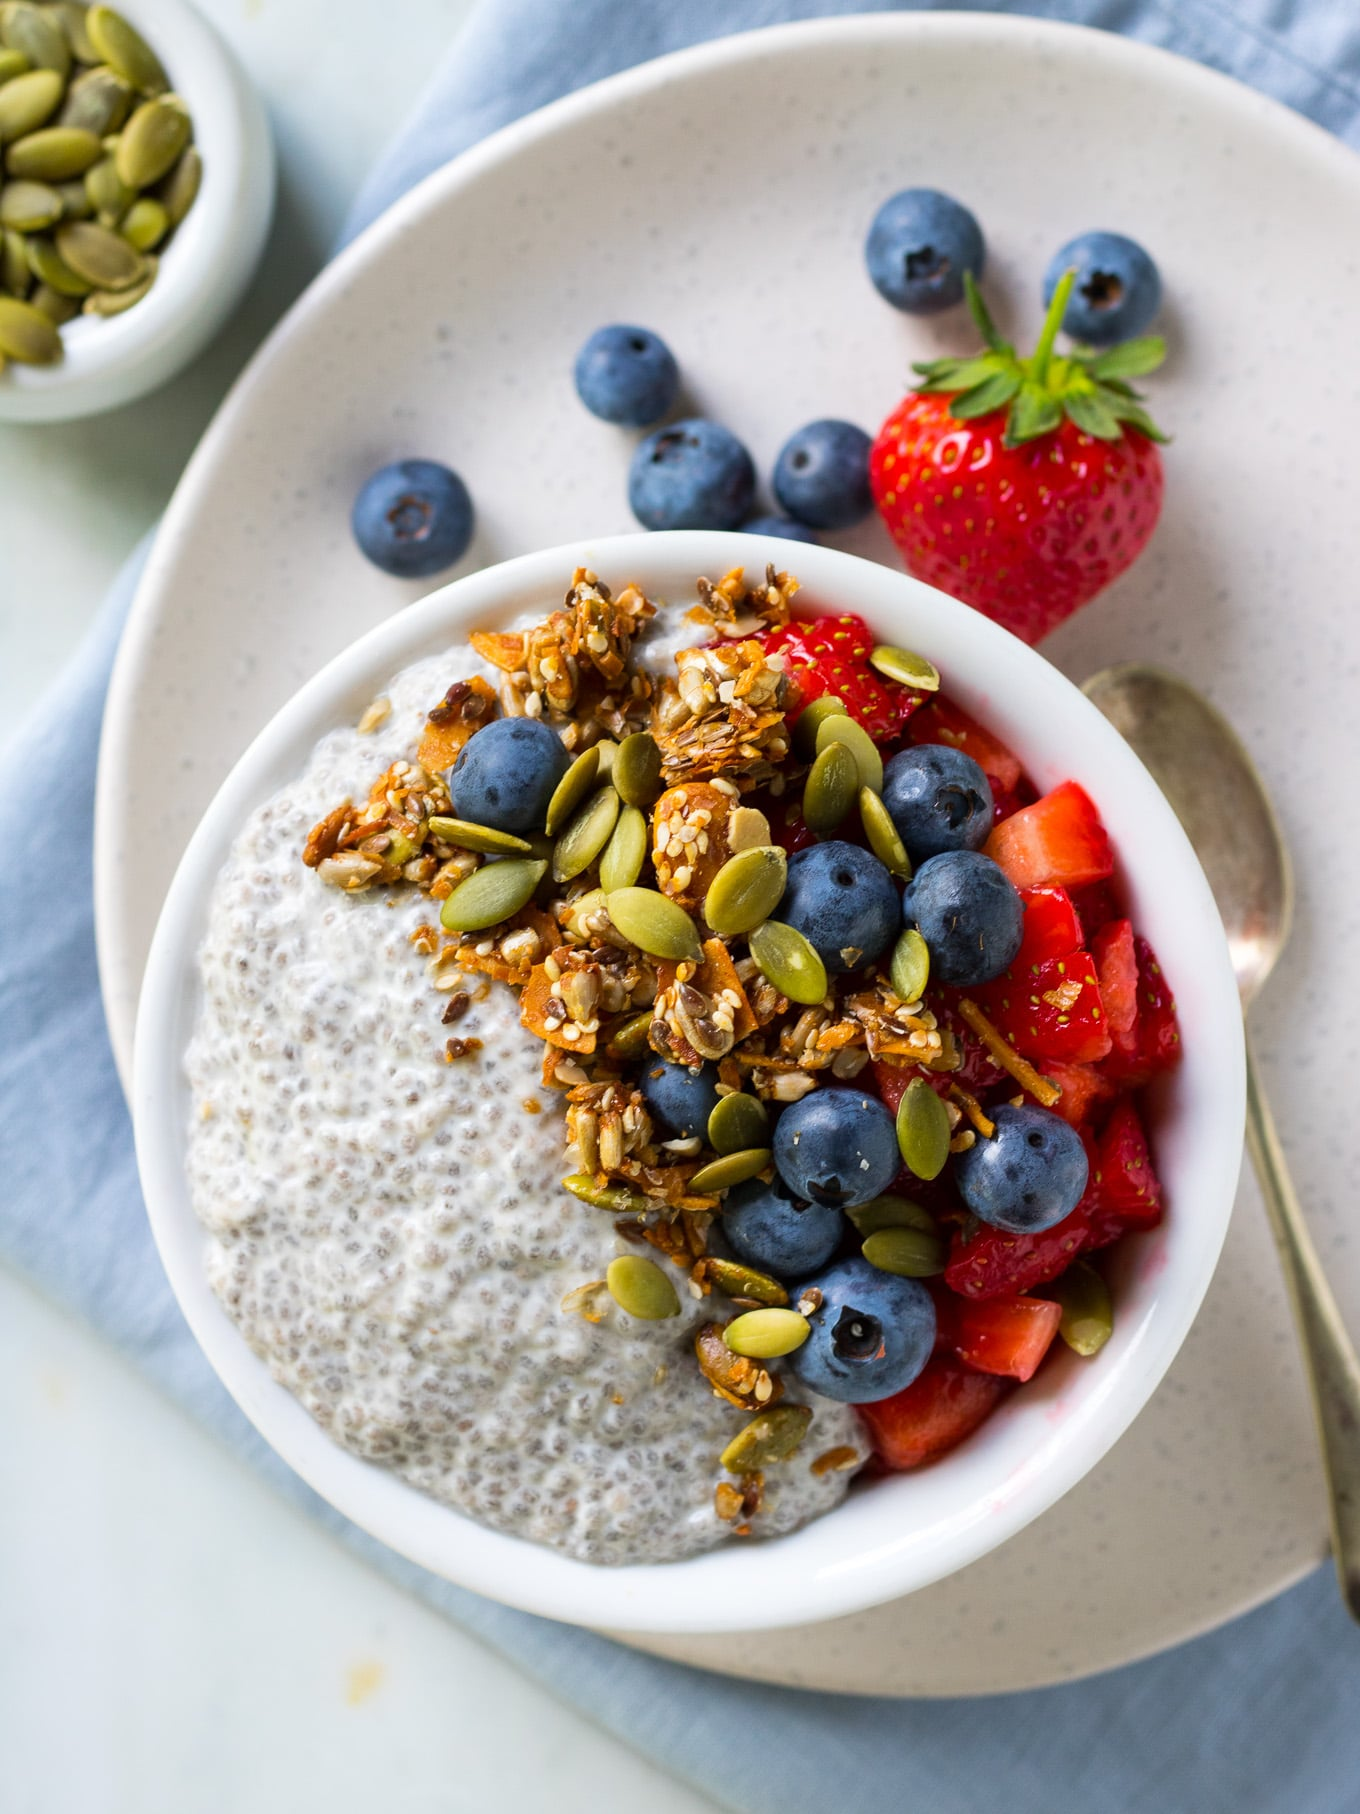 Vanilla Chia Pudding made with coconut milk, vanilla and maple syrup. Serve with fruit and granola for a #healthy breakfast! #chiapudding #dairyfree #breakfast